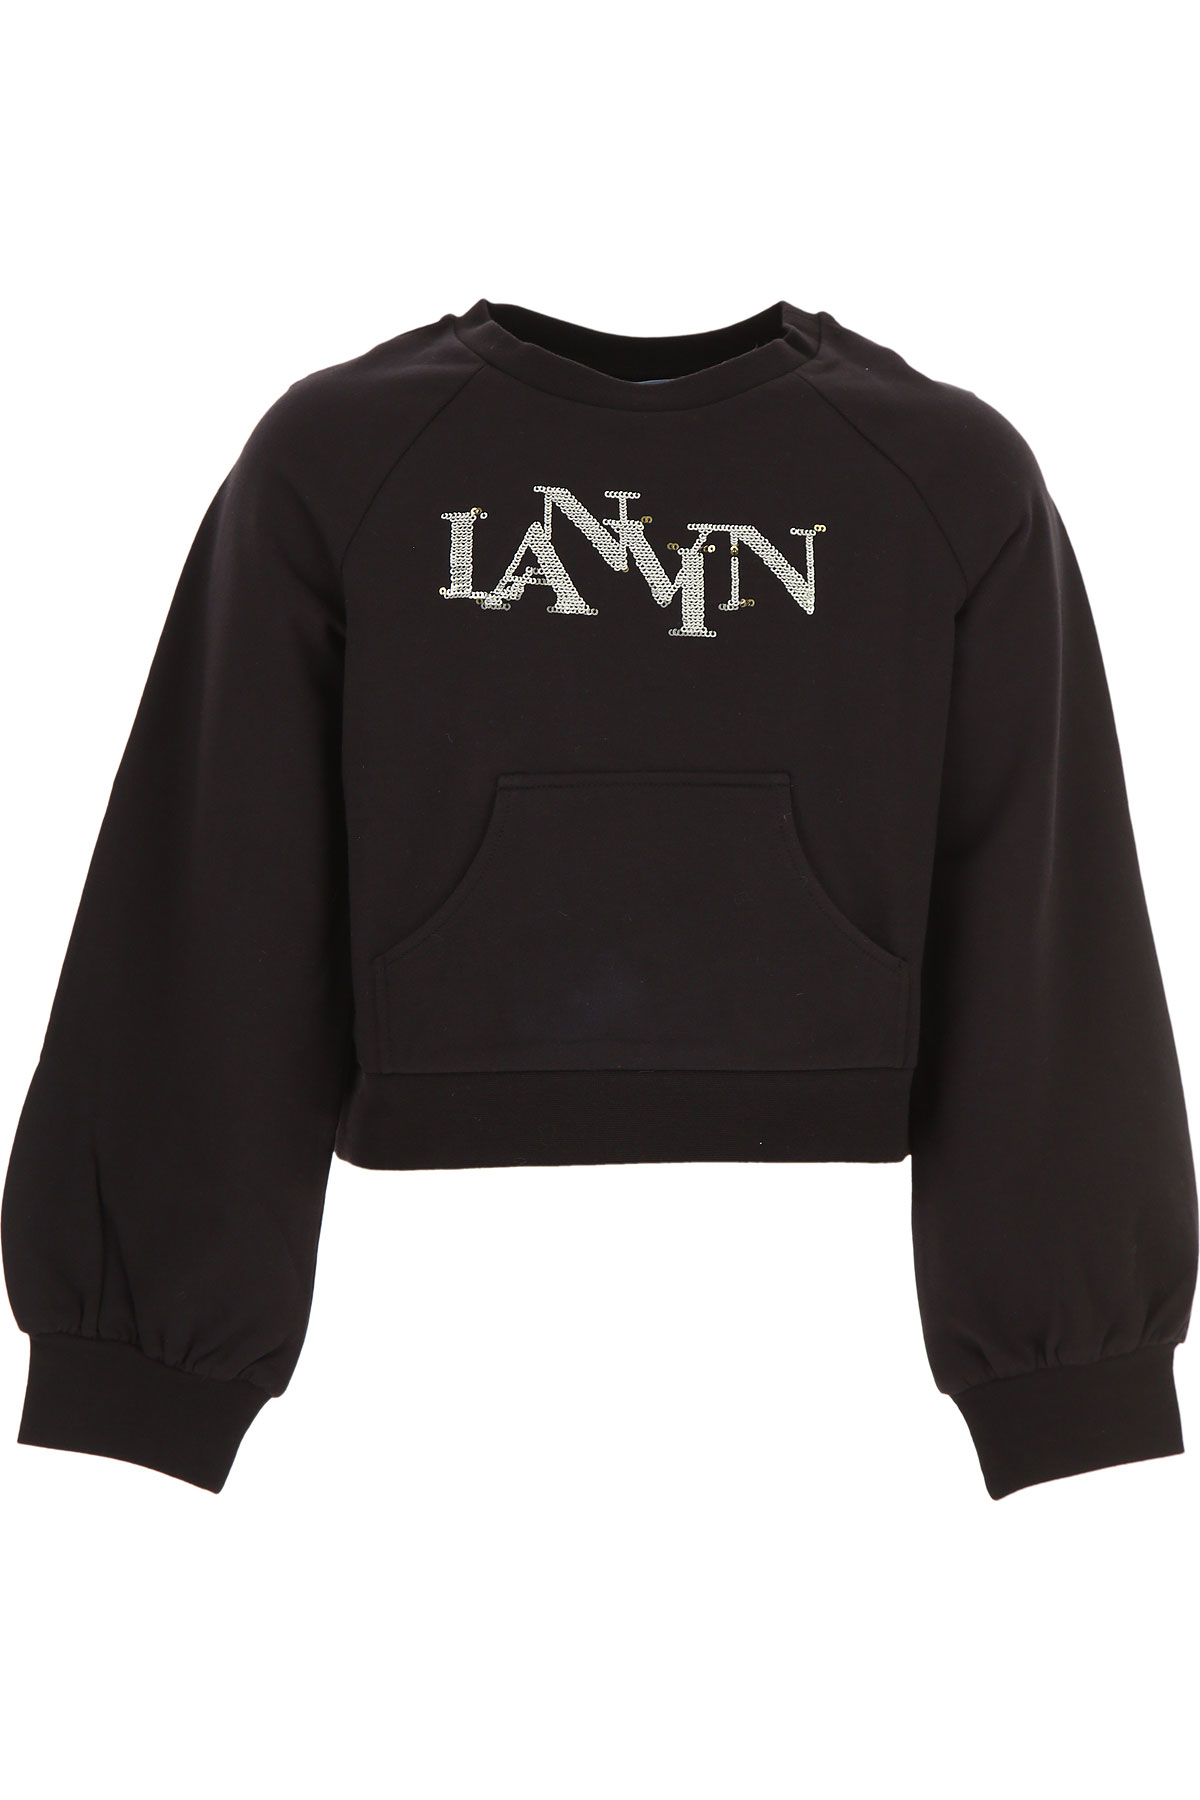 Lanvin Kids Sweatshirts & Hoodies for Girls On Sale, Black, Cotton, 2019, 10Y 12Y 8Y